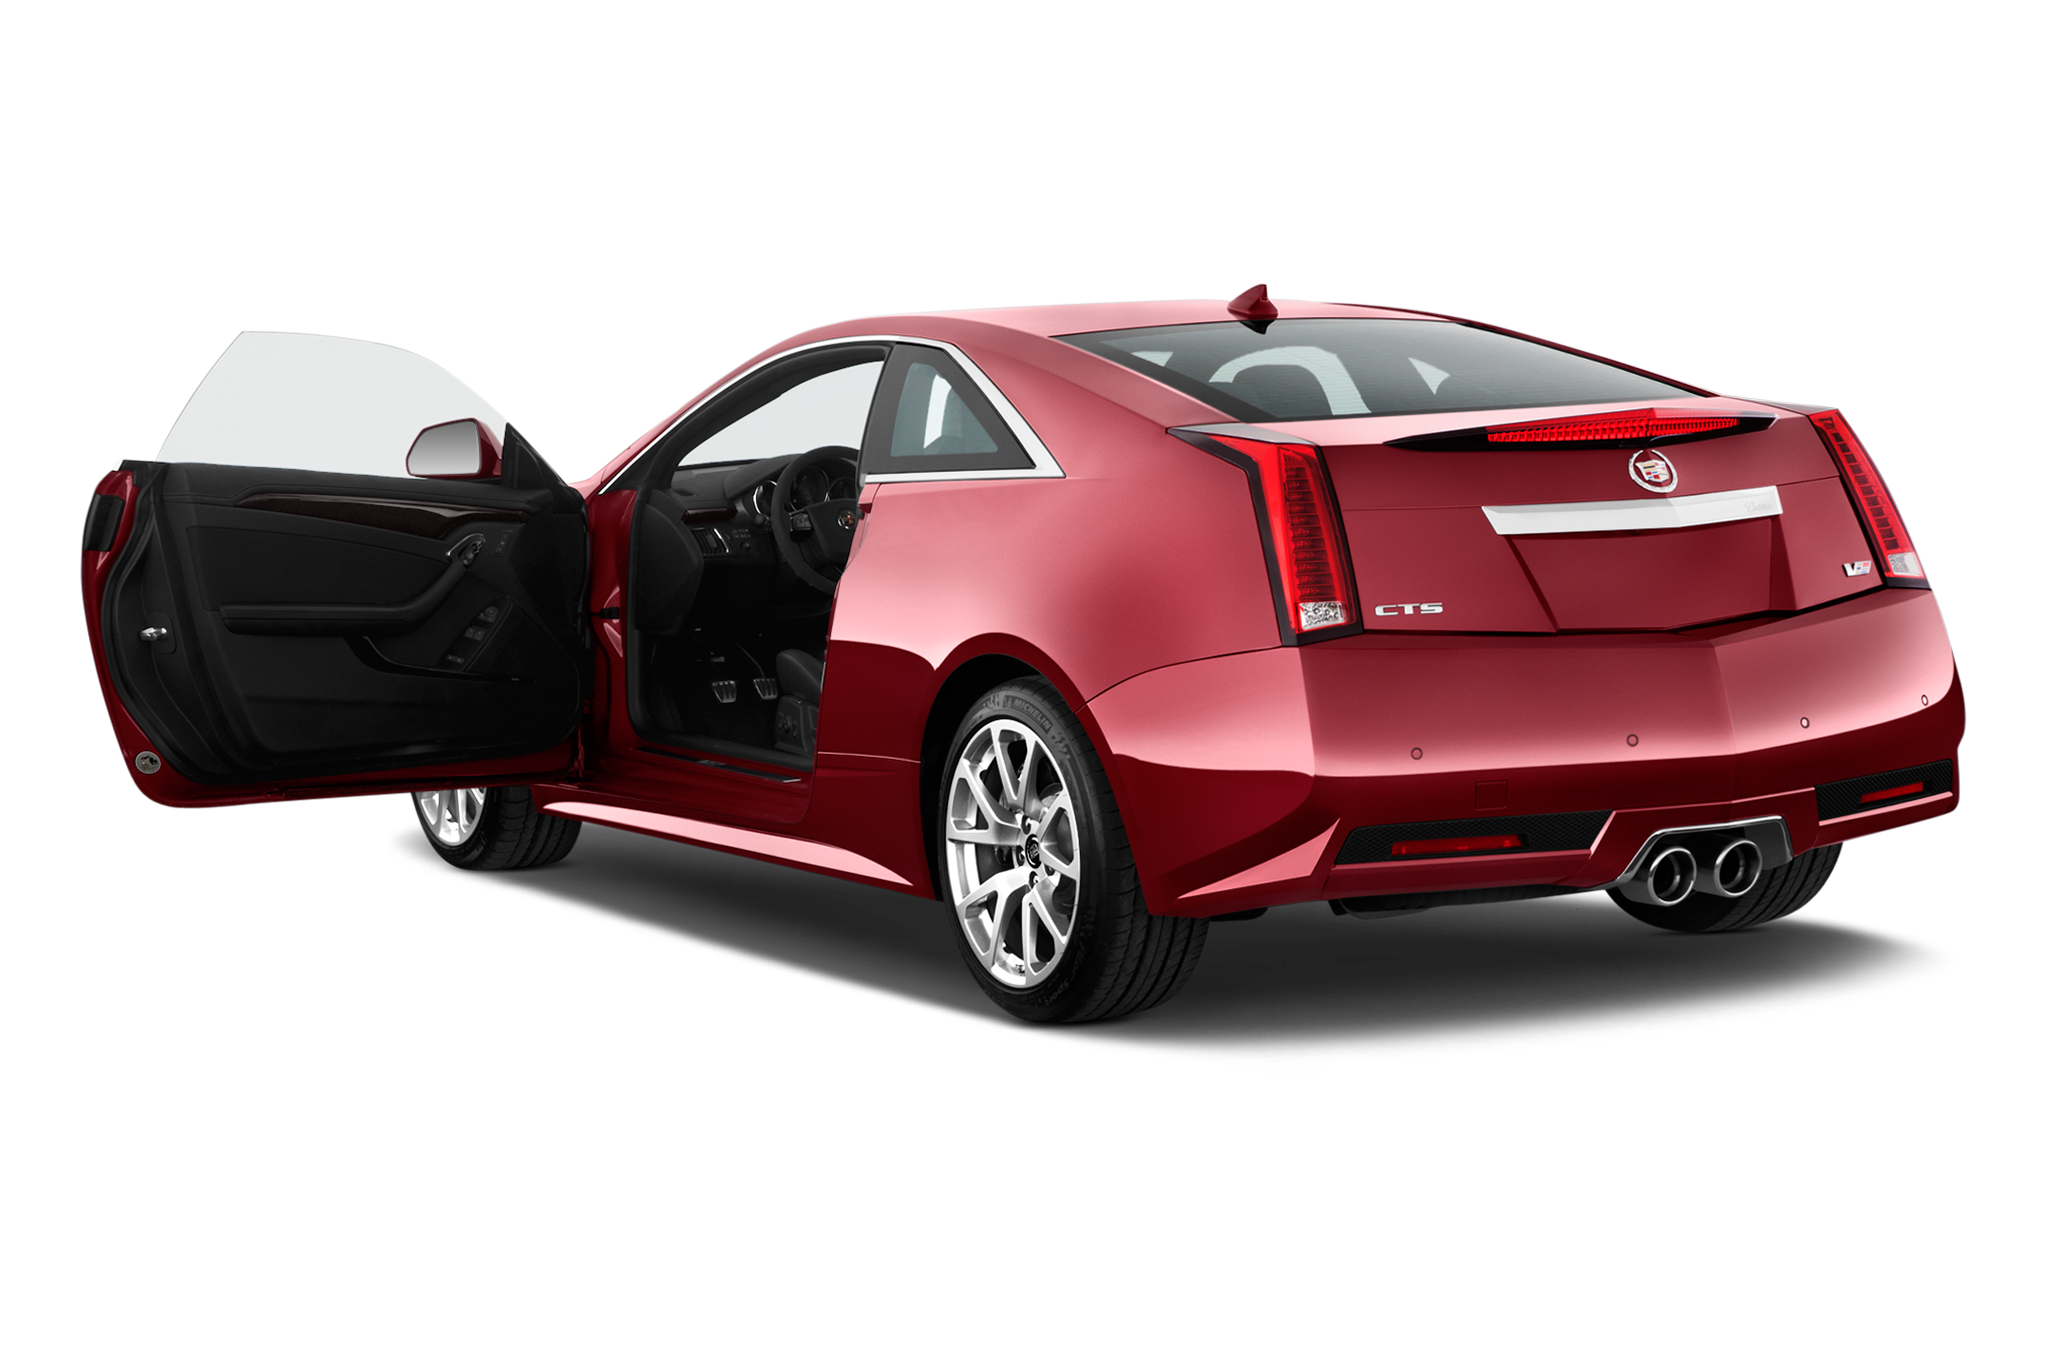 2019 Cadillac Cts V Coupe >> 2015 Cadillac CTS-V Coupe Special Edition Announced